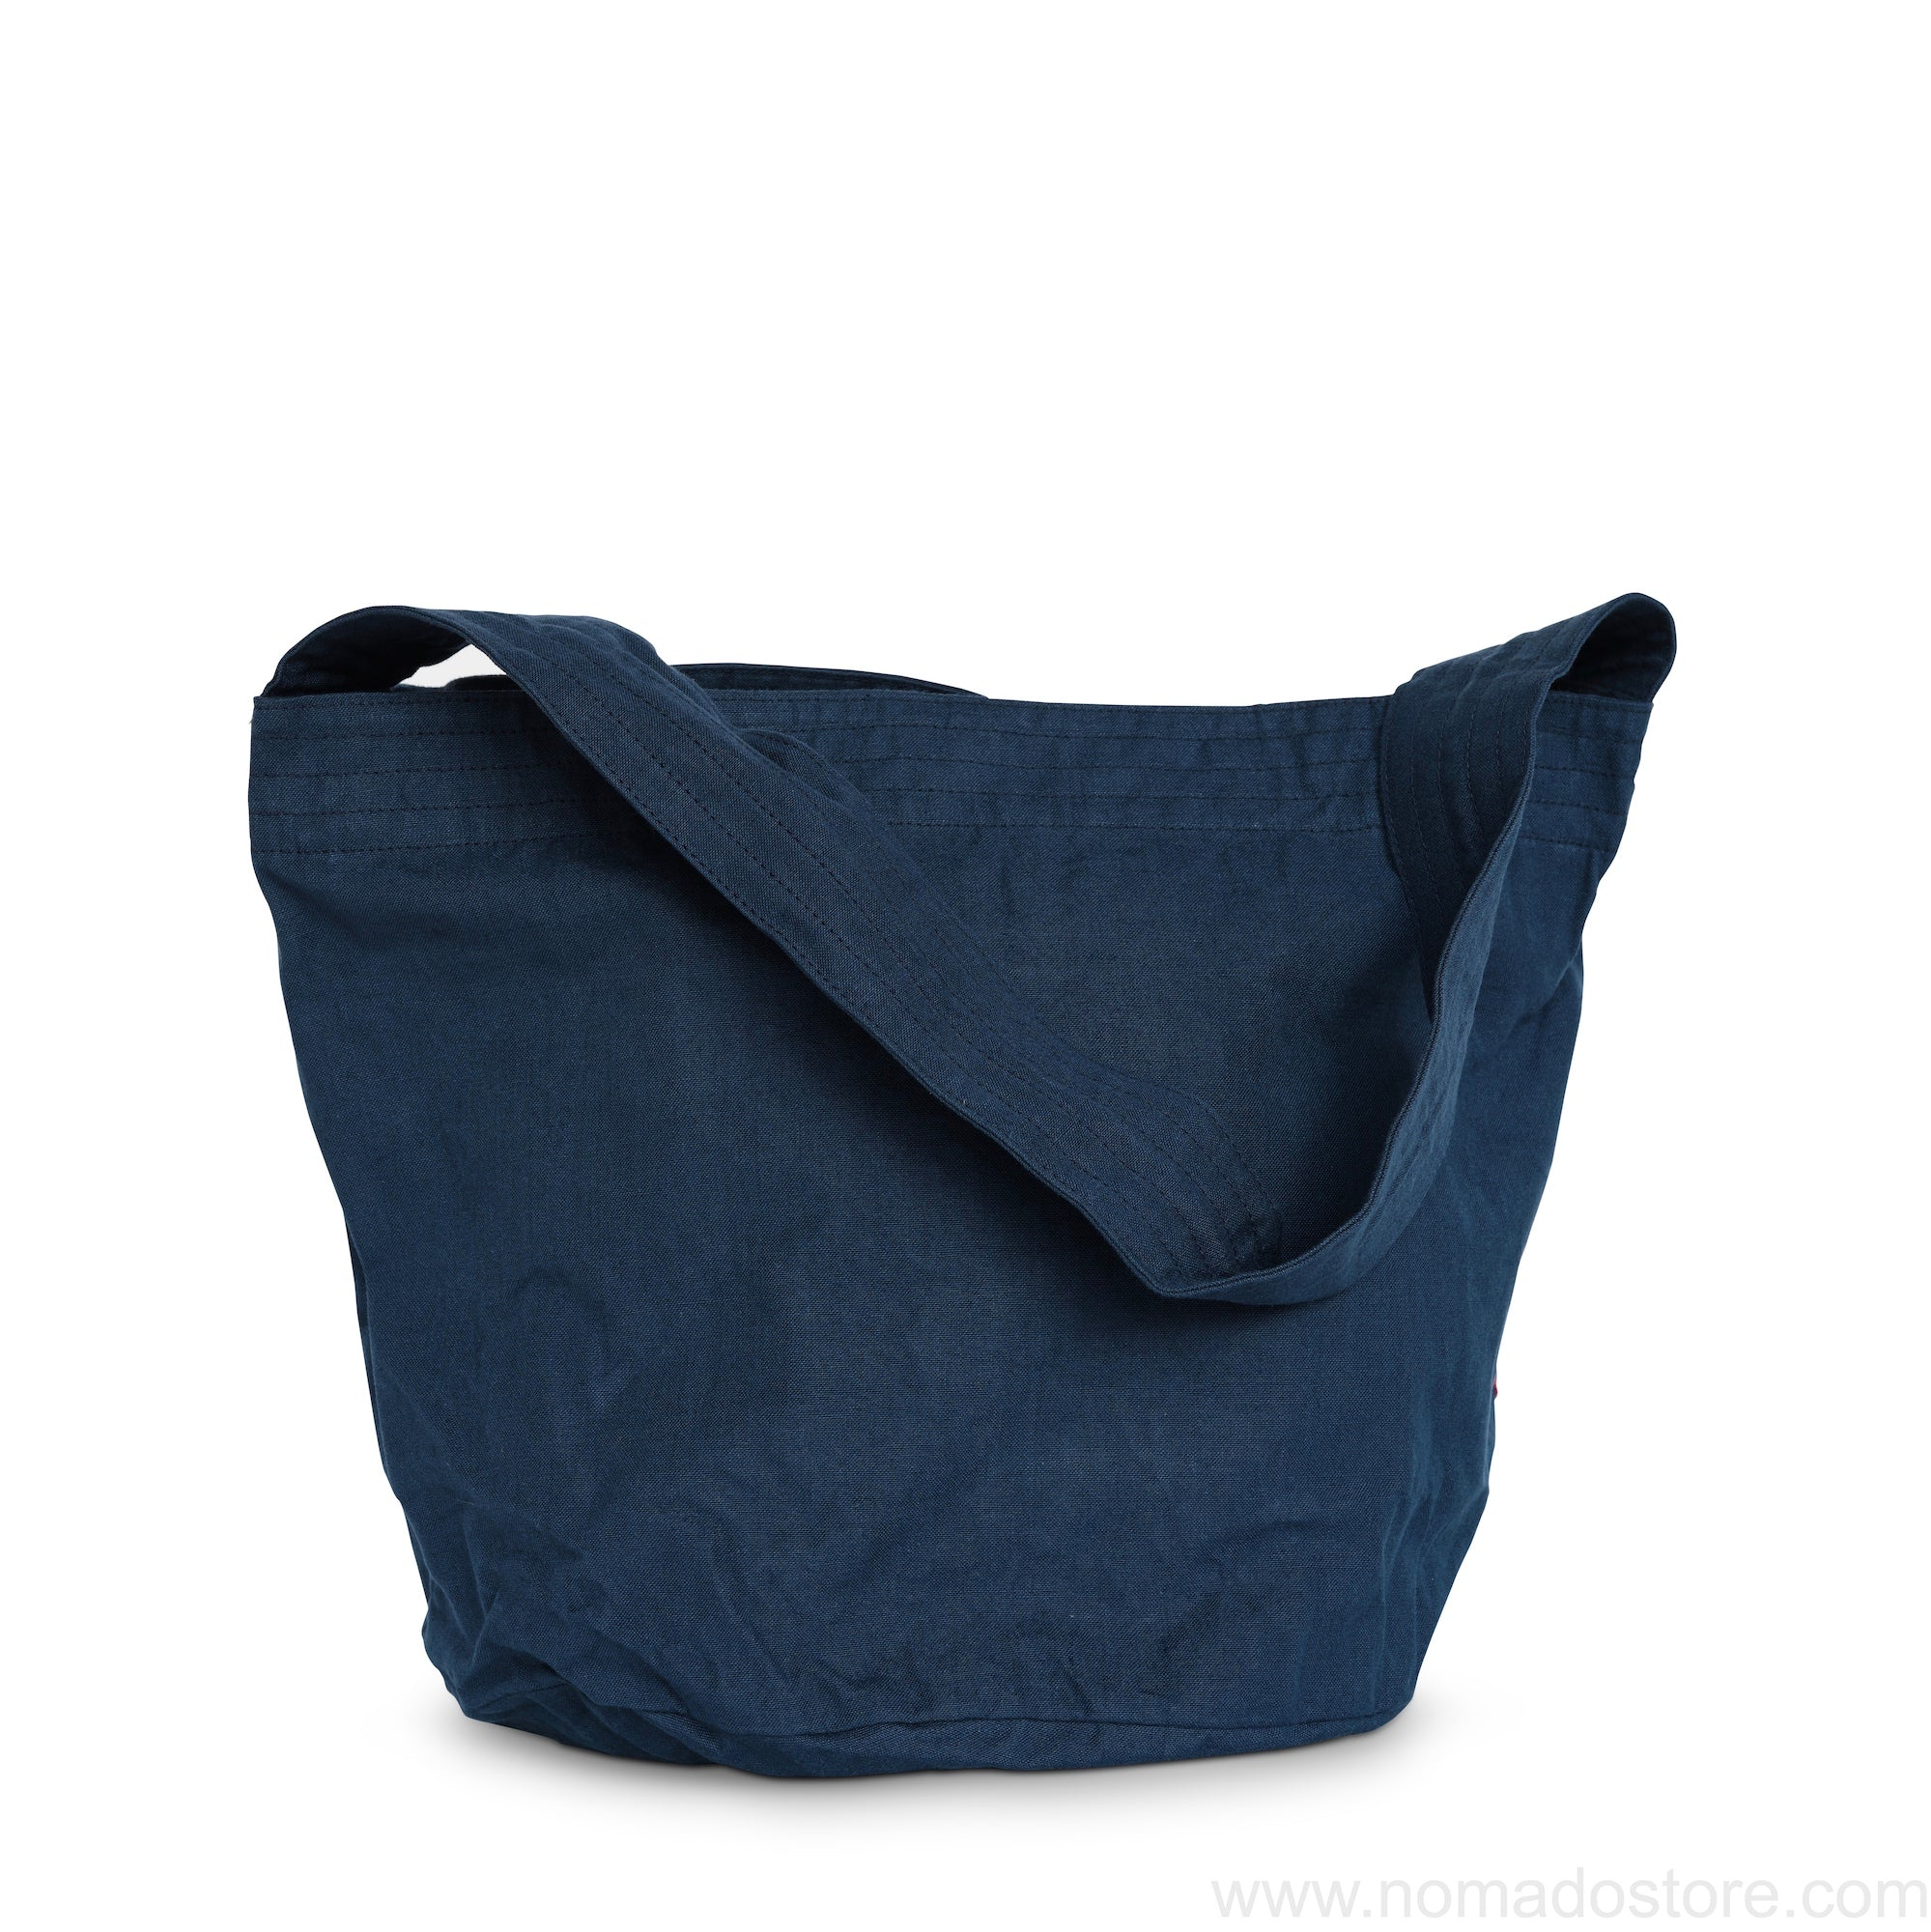 Classiky Linen one shoulder tote bag L (indigo blue) - NOMADO Store